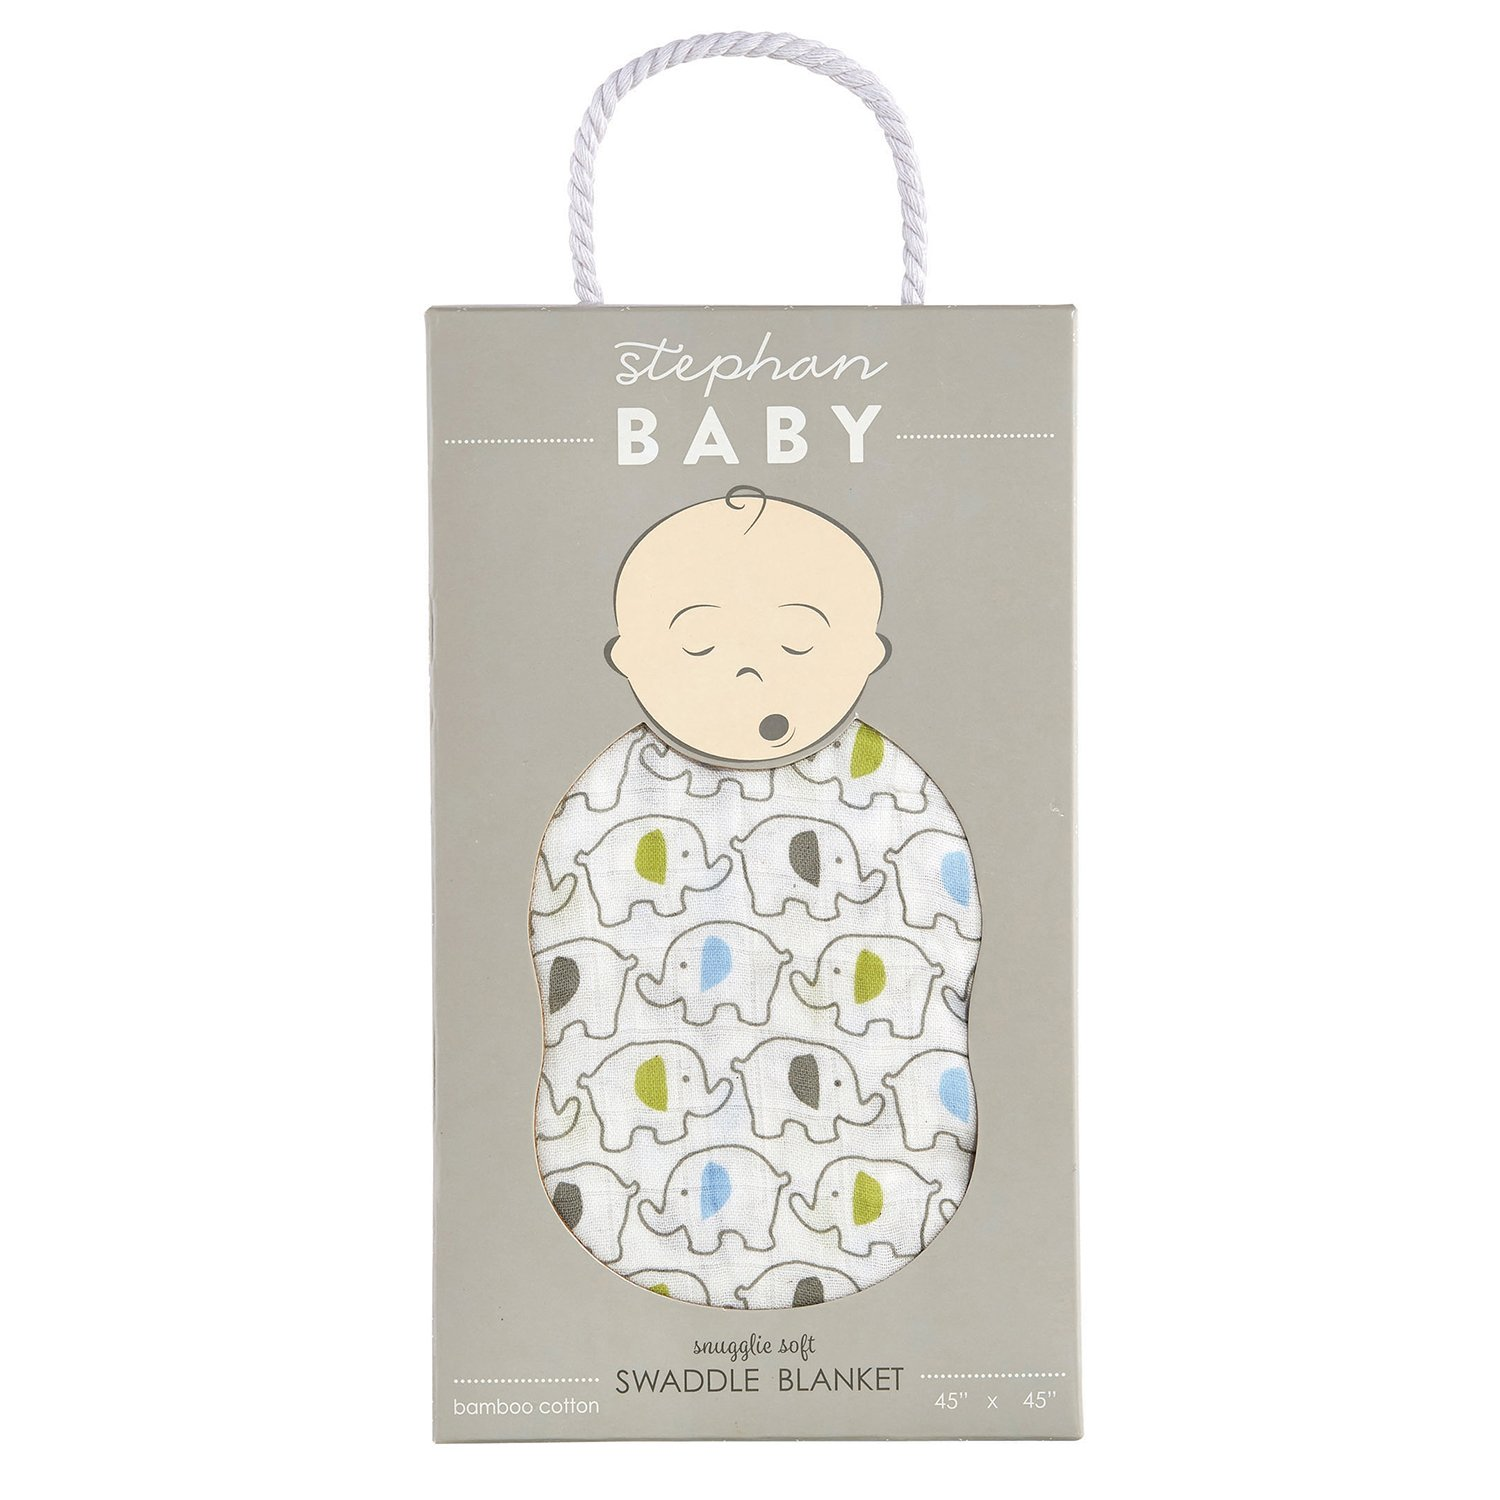 Stephan Baby Viscose Cotton Muslin Swaddle Blanket, Blue Elephants